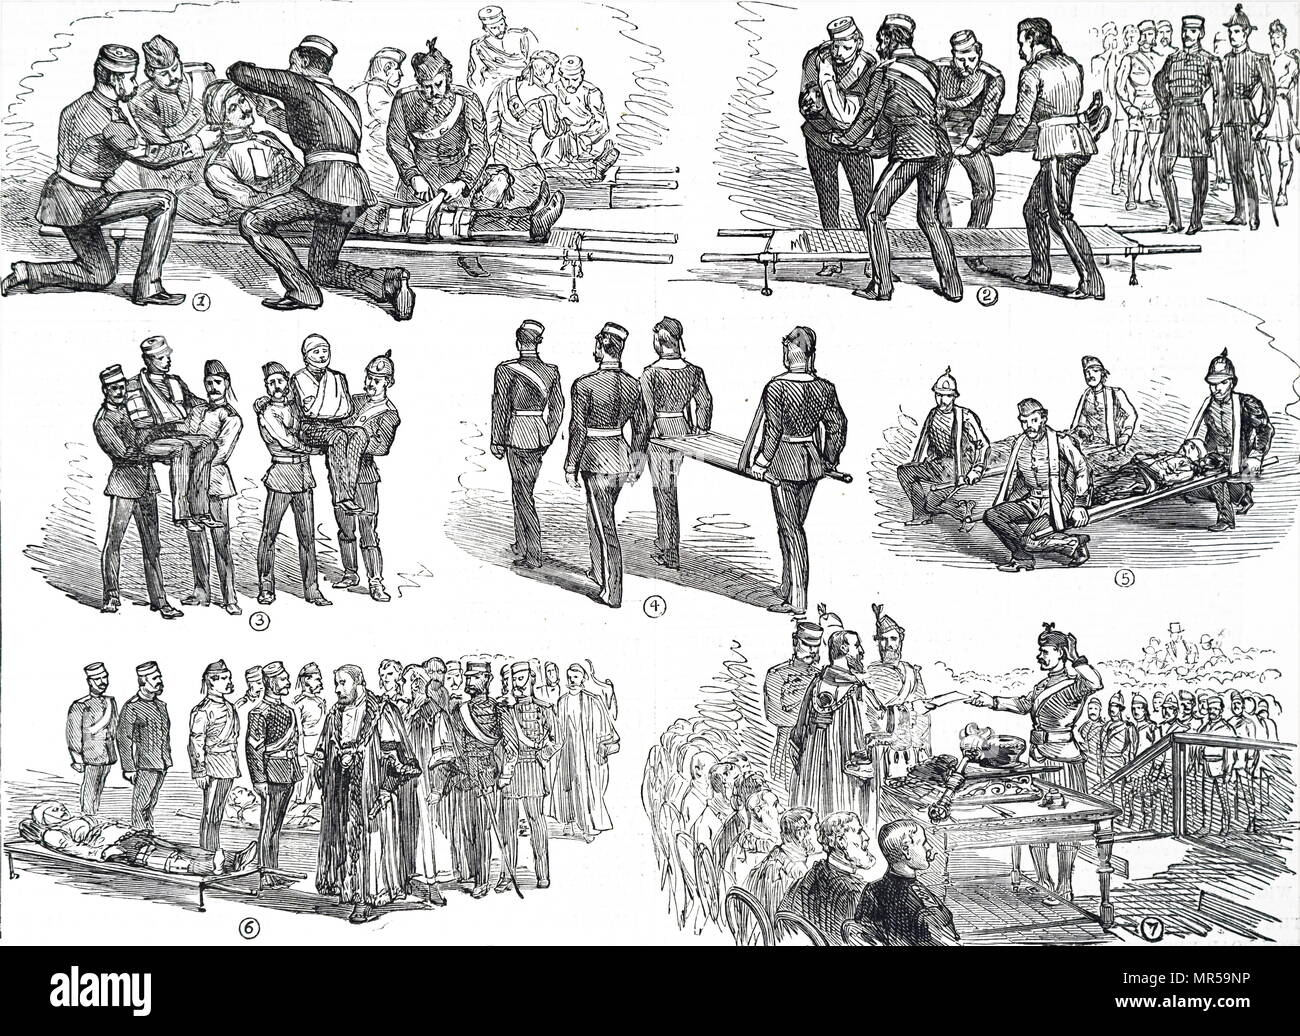 Engravings depicting the ambulance squad of the 2nd Middlesex Artillery Volunteers giving a demonstration before the Lord Mayor of London in Guildhall. Dated 19th century - Stock Image